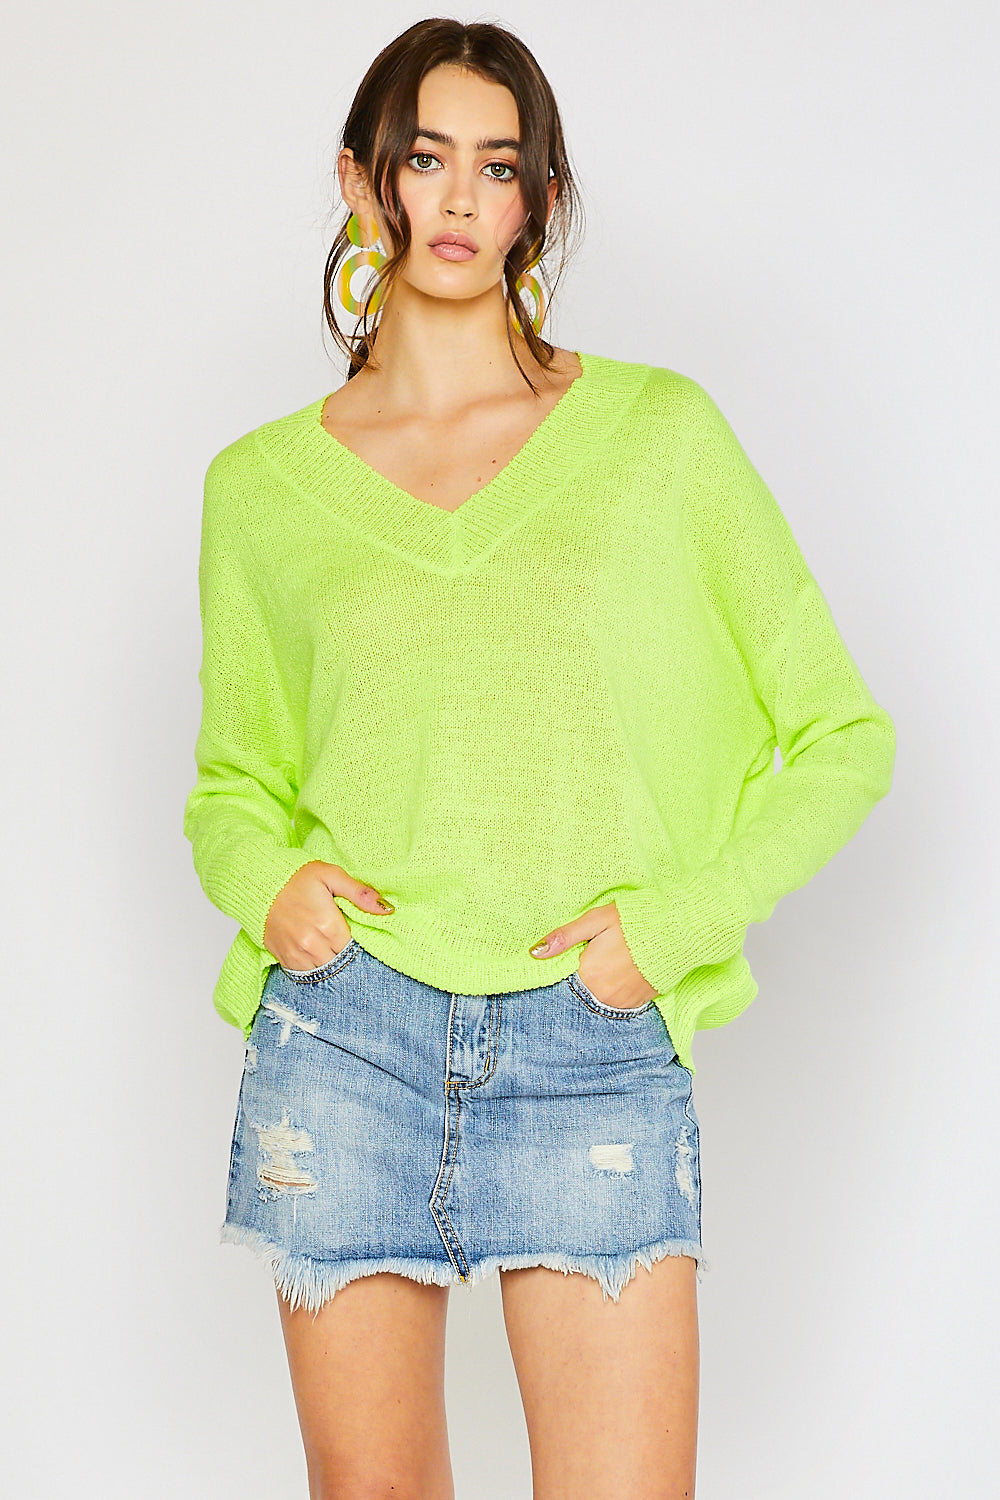 V-neck Drop Shoulder Spring Sweater - Neon Yellow (Pre-order)